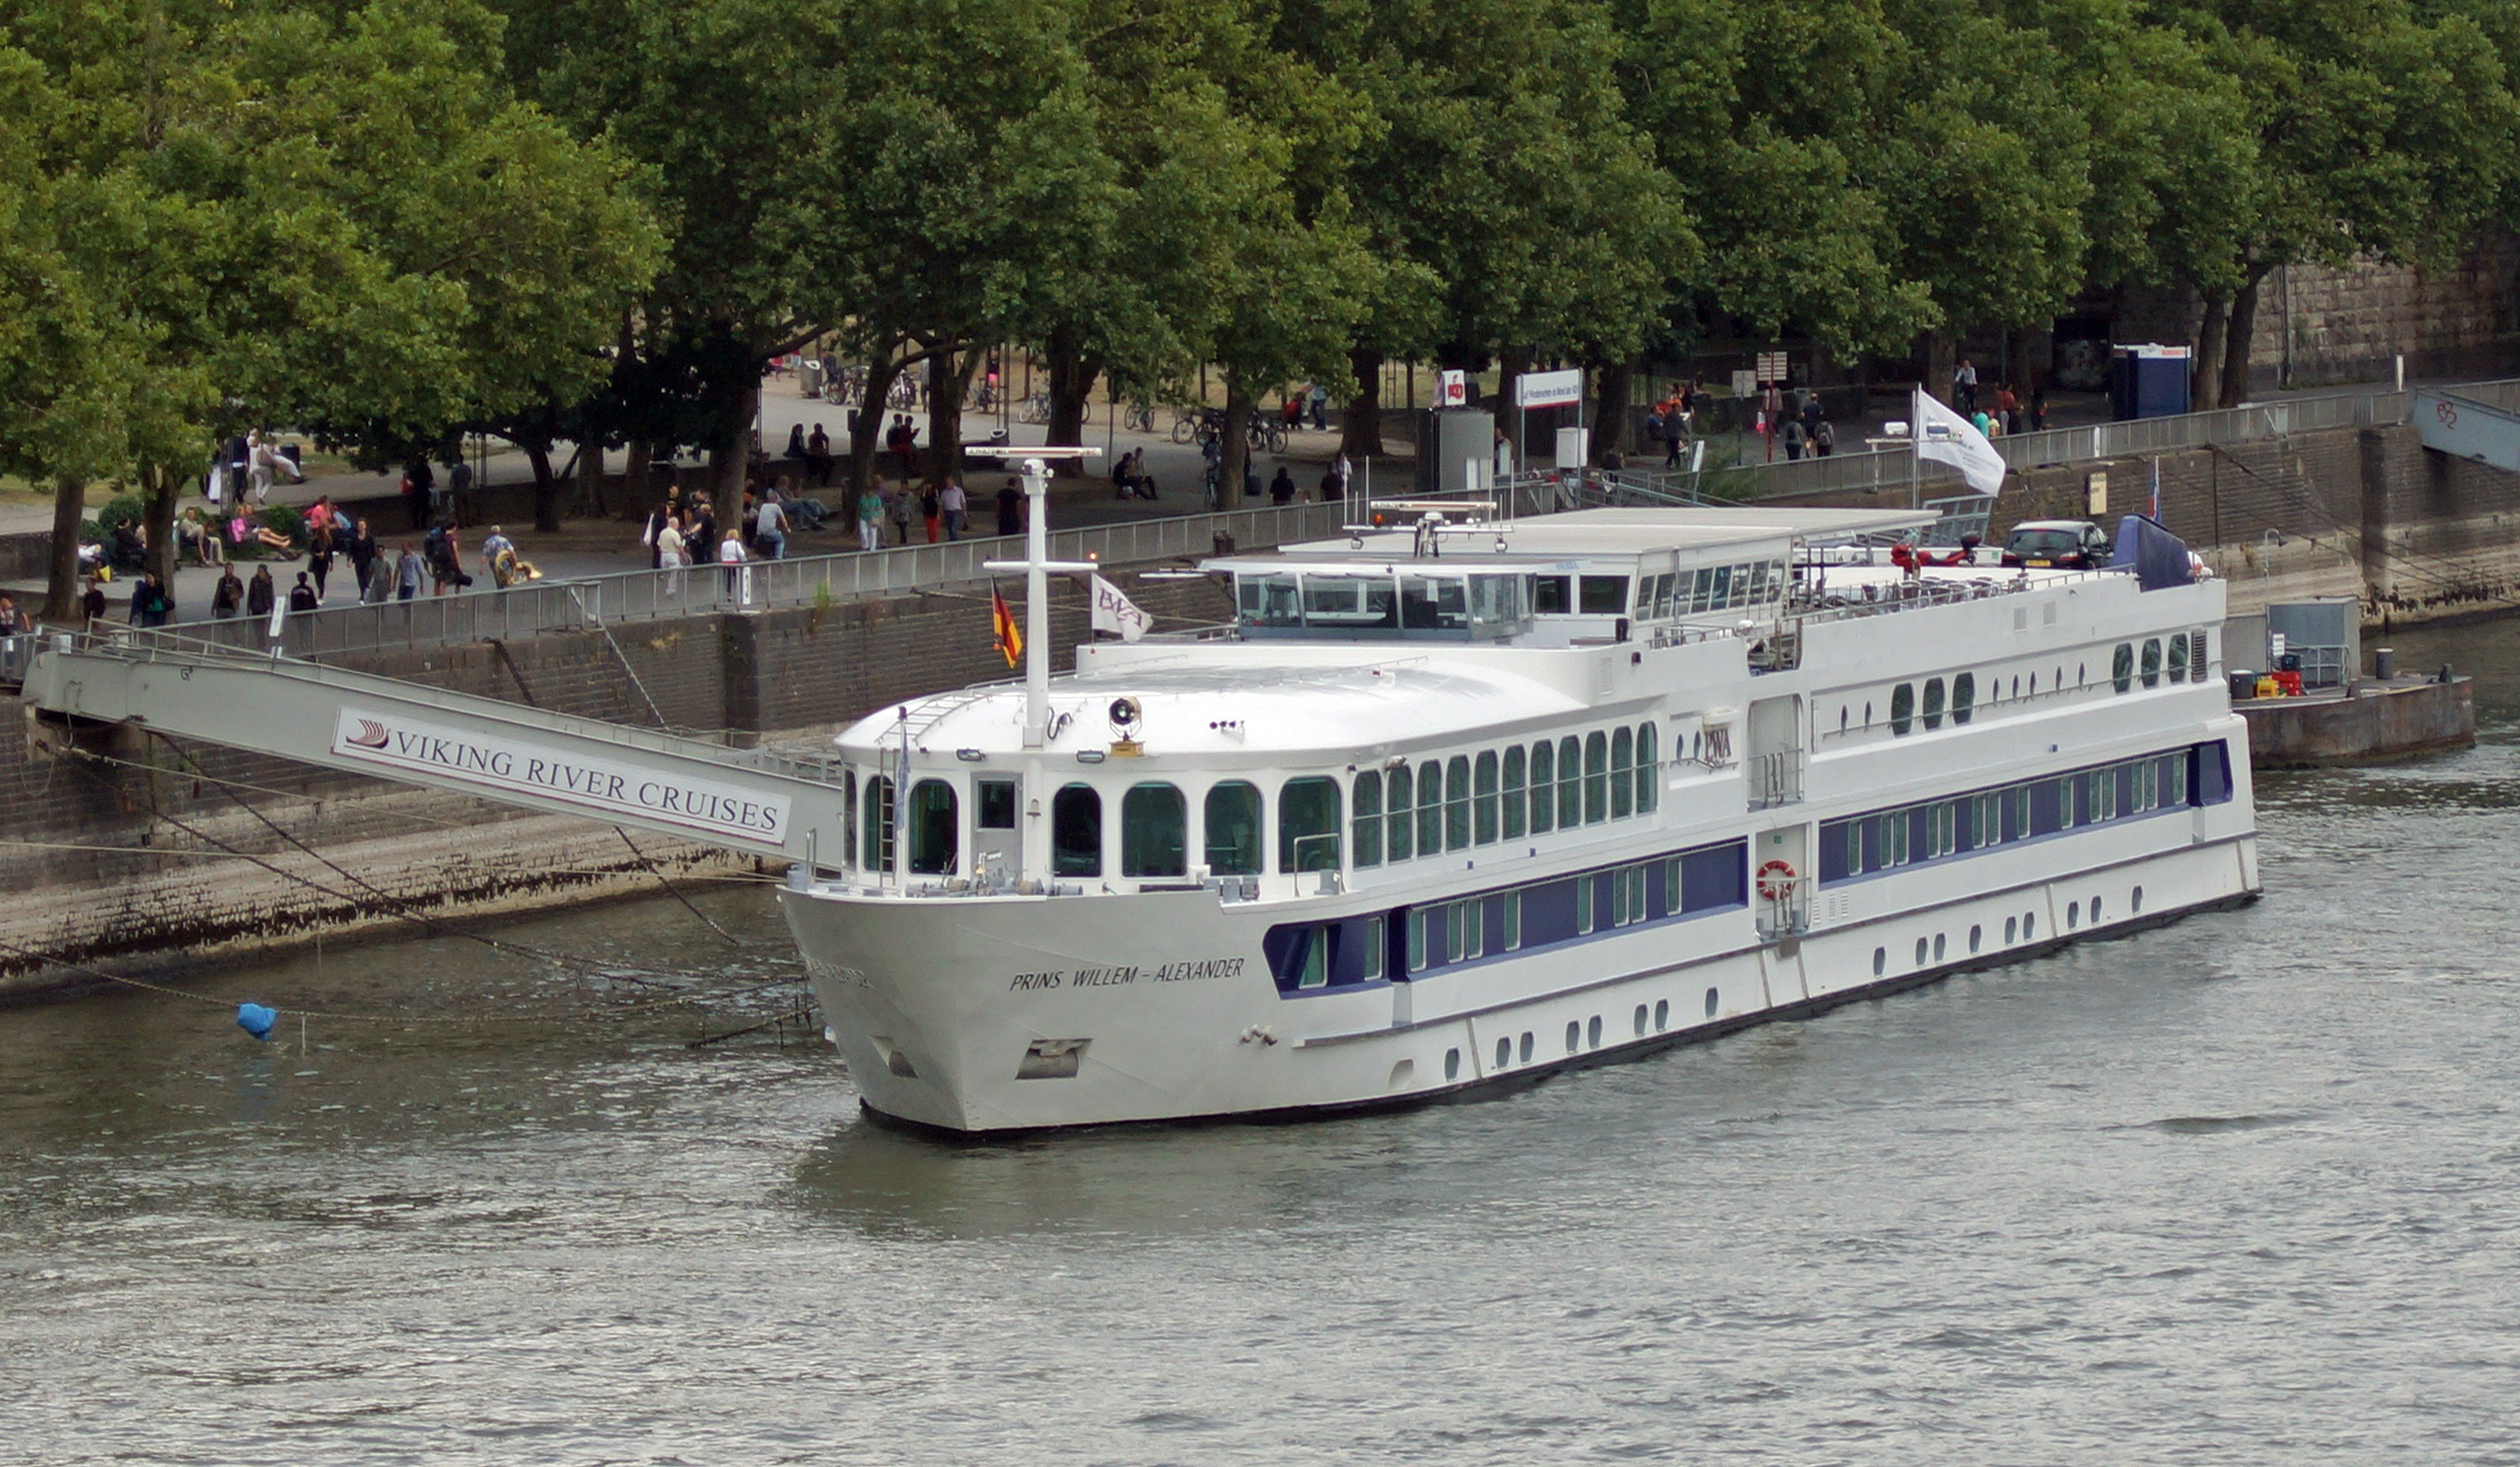 A long white cruise ship docked on the side of the river with a gangway leading to the riverbank